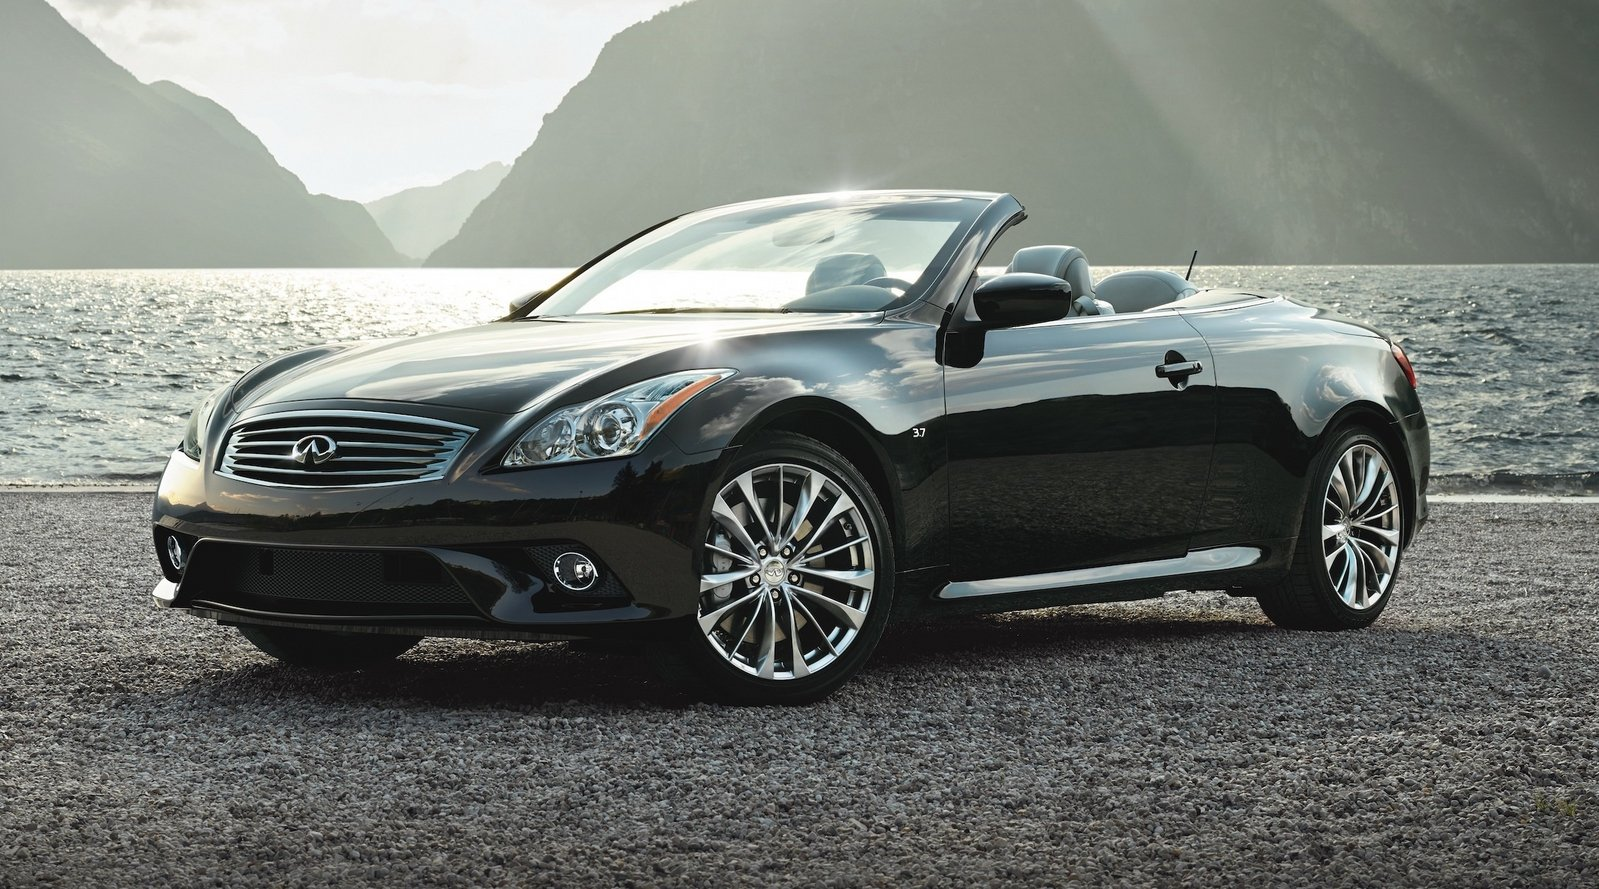 2014 infiniti q60 convertible picture 560311 car review top speed. Black Bedroom Furniture Sets. Home Design Ideas